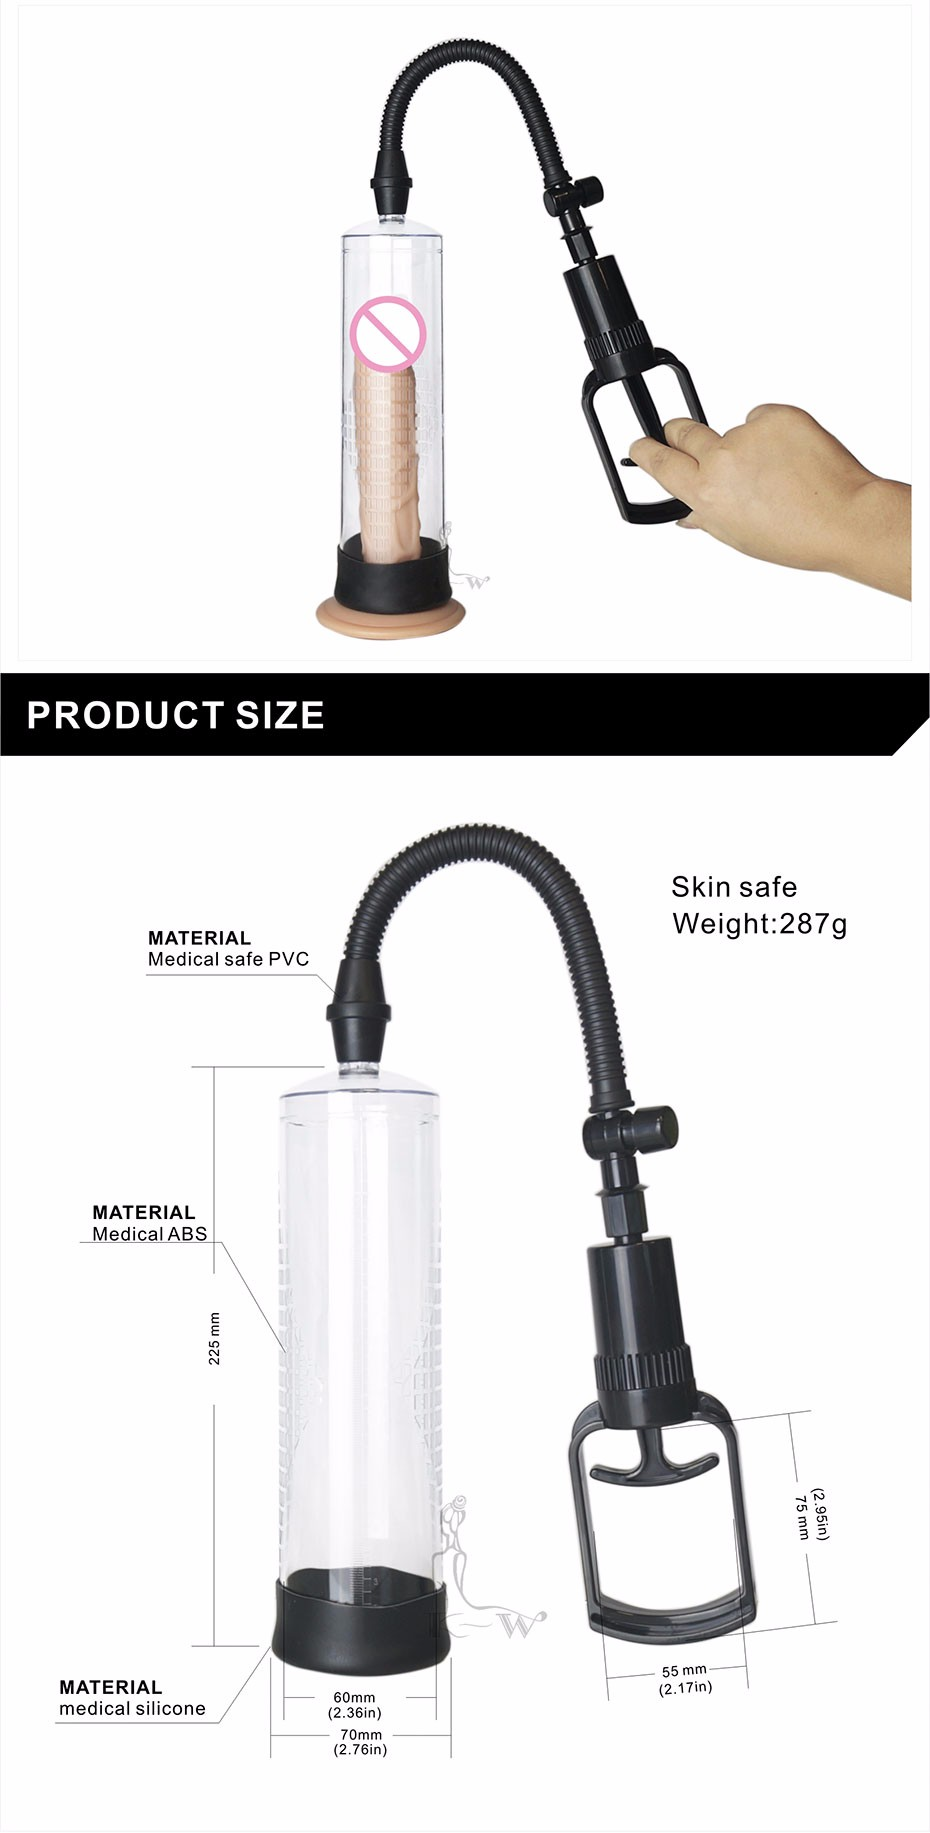 Penis Pump CANWIN Penis Enlargement Vacuum Pump Penis Extender Man Sex Toys Penis Enlarger Adult Sexy Product for Men [22 16